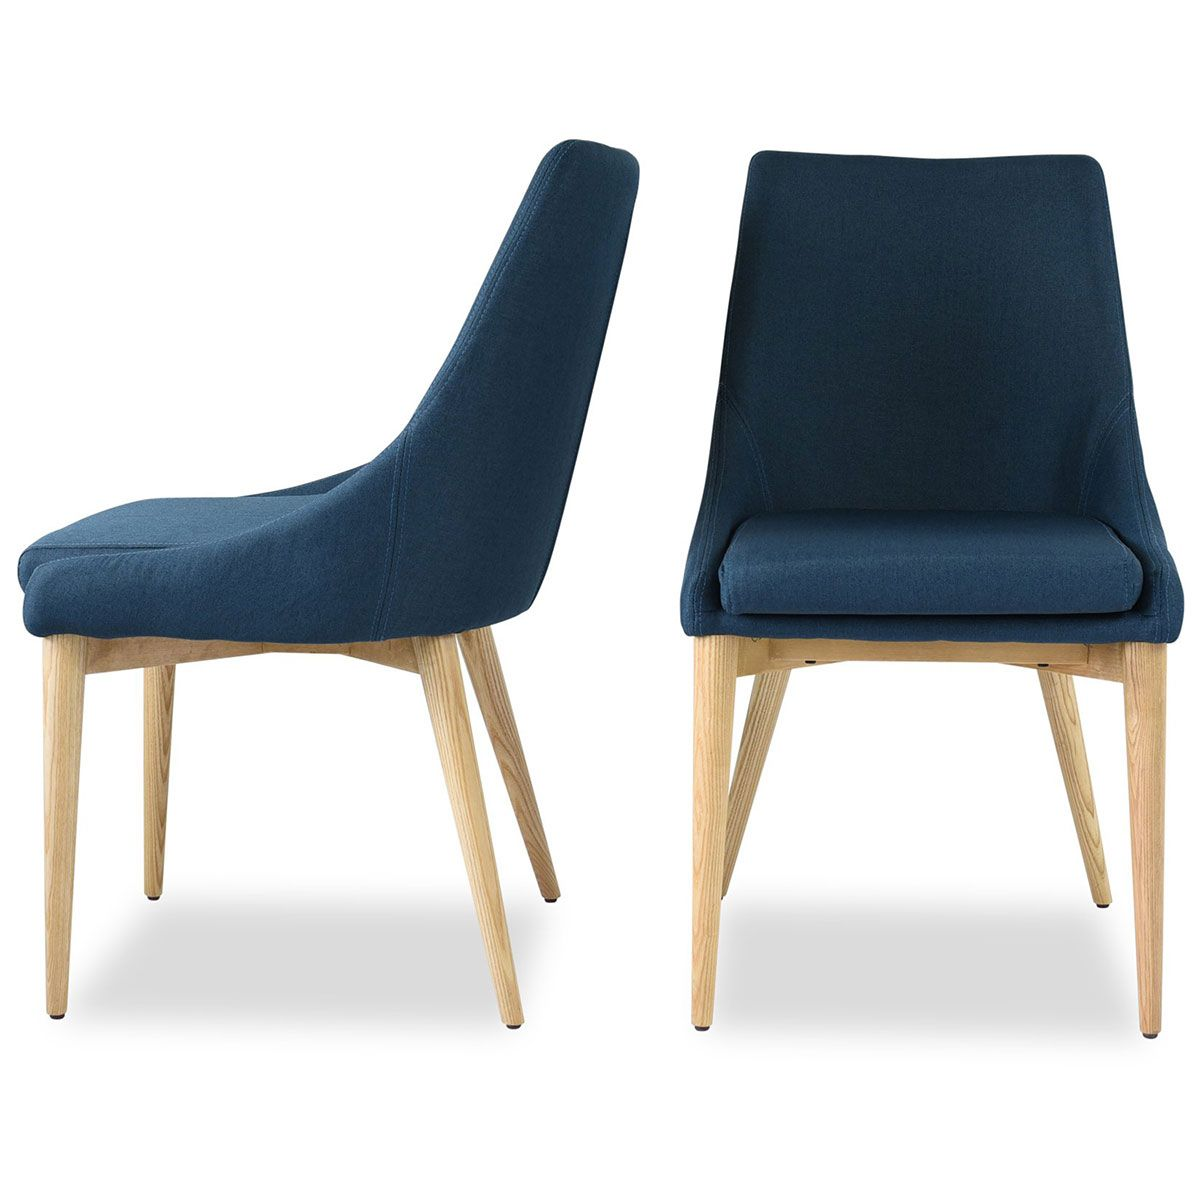 Edloe Finch Ef Zx Dc005b Jessica Dining Chair Blue Fabric On Oak